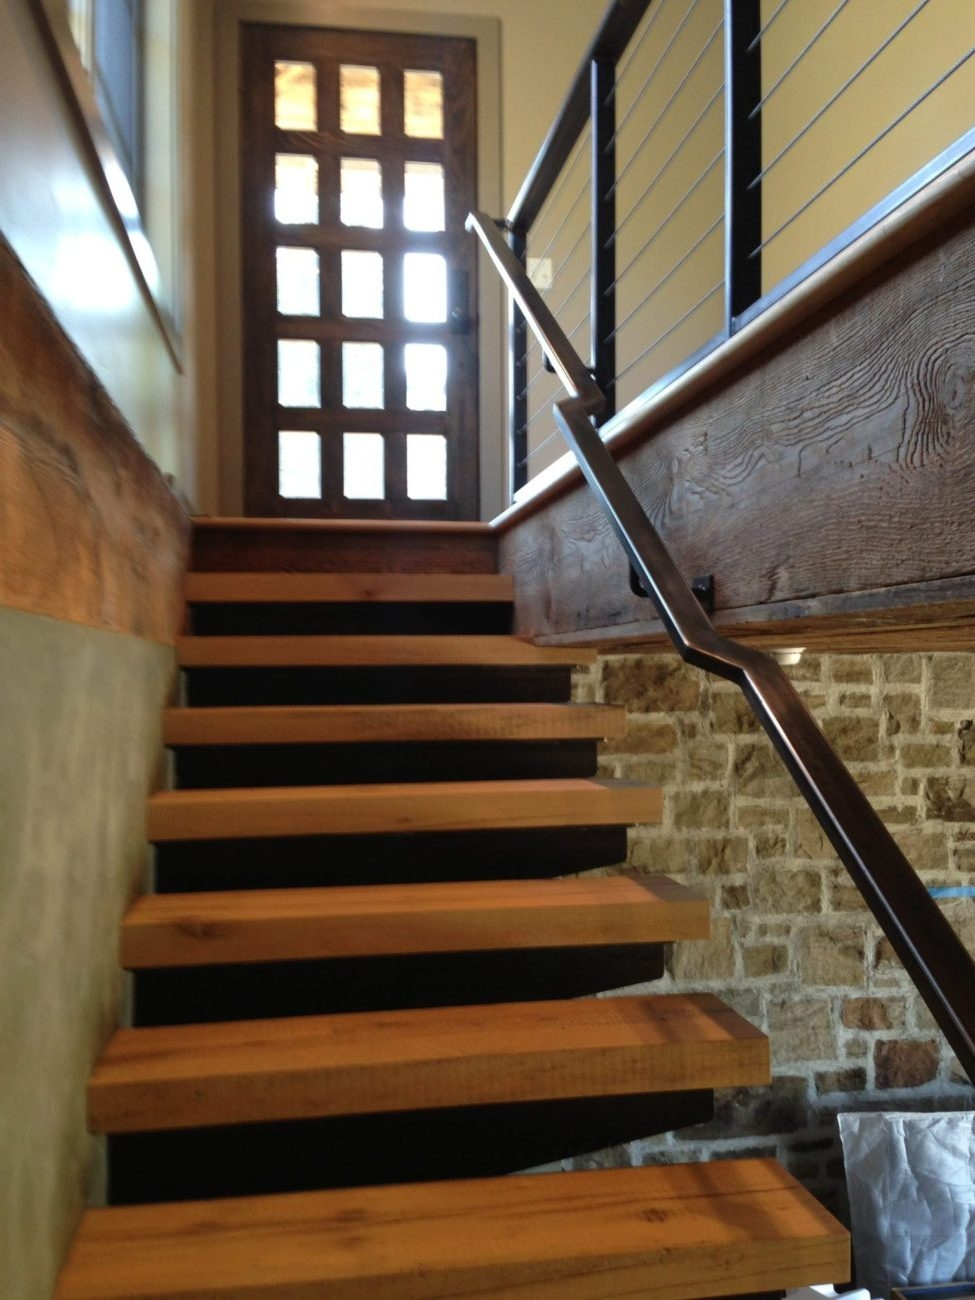 Stairs And Railing – Custom Ii Manufacturing | Steel Stairs With Wood Treads | Wooden Stair | Glass | Exterior | Pine Wood Tread | Typical